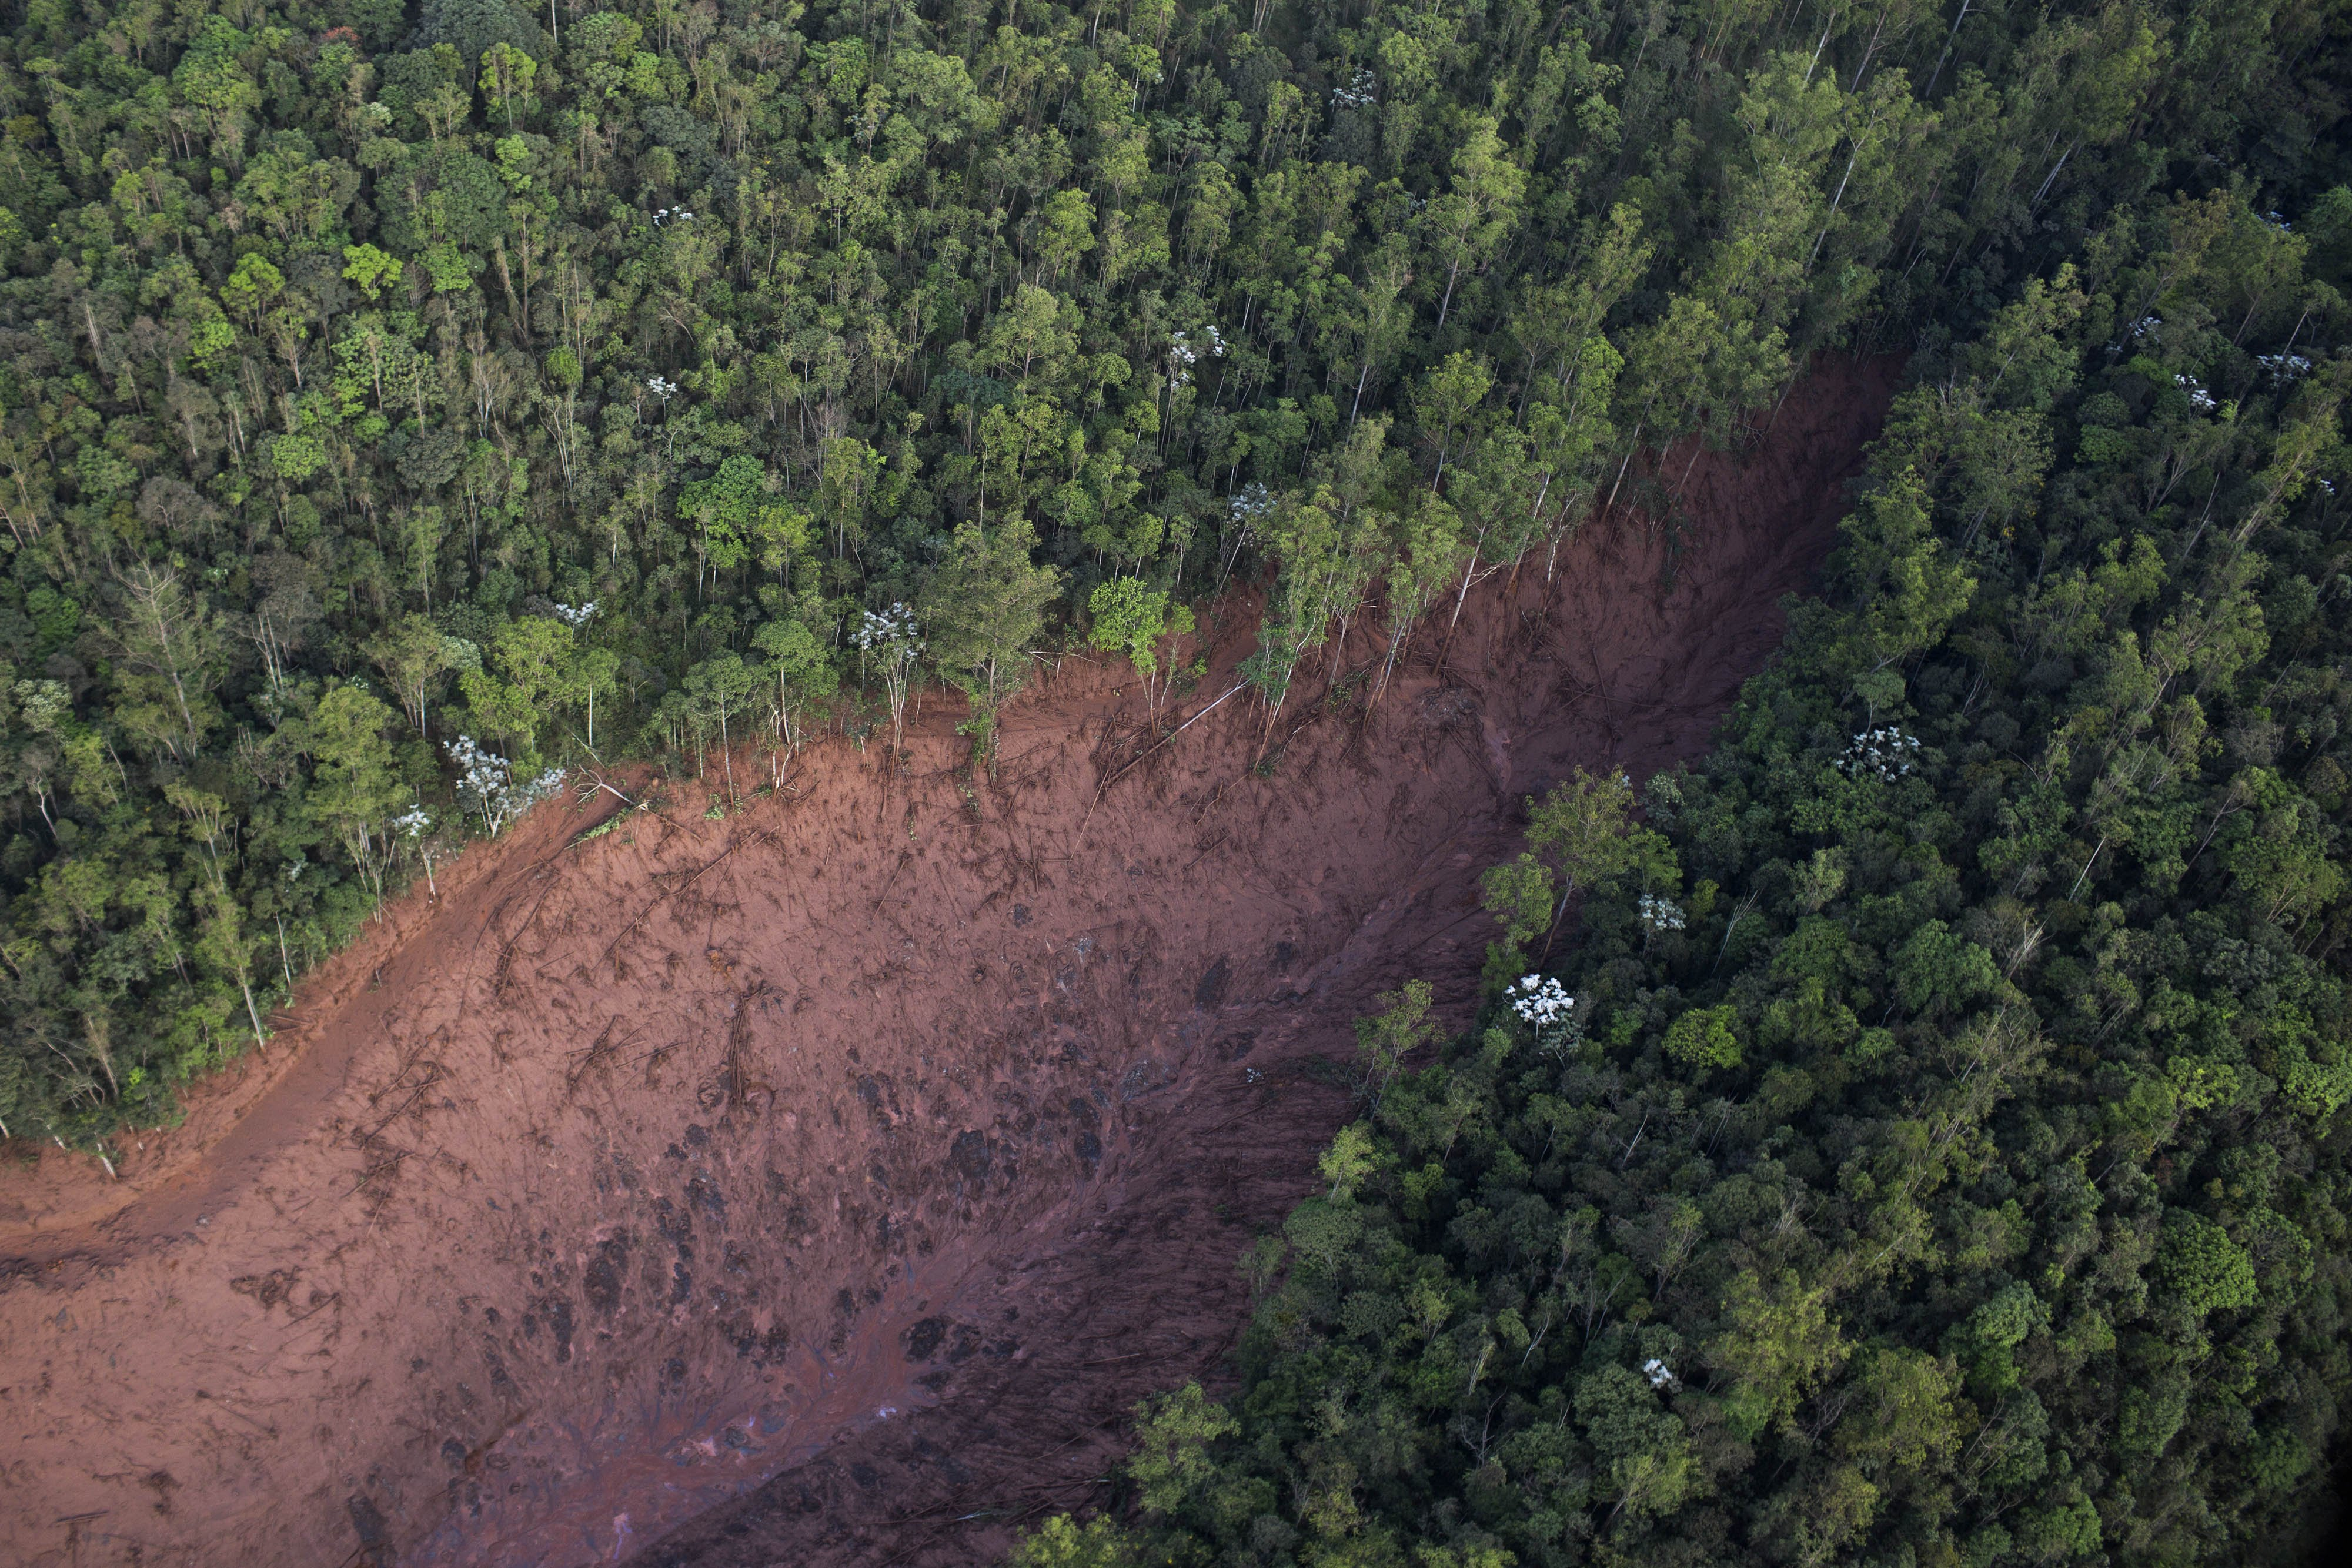 Aerial view of a mudslide after a dam burst at the small town of Bento Rodrigues in Minas Gerais state, Brazil, on Nov. 6, 2015.